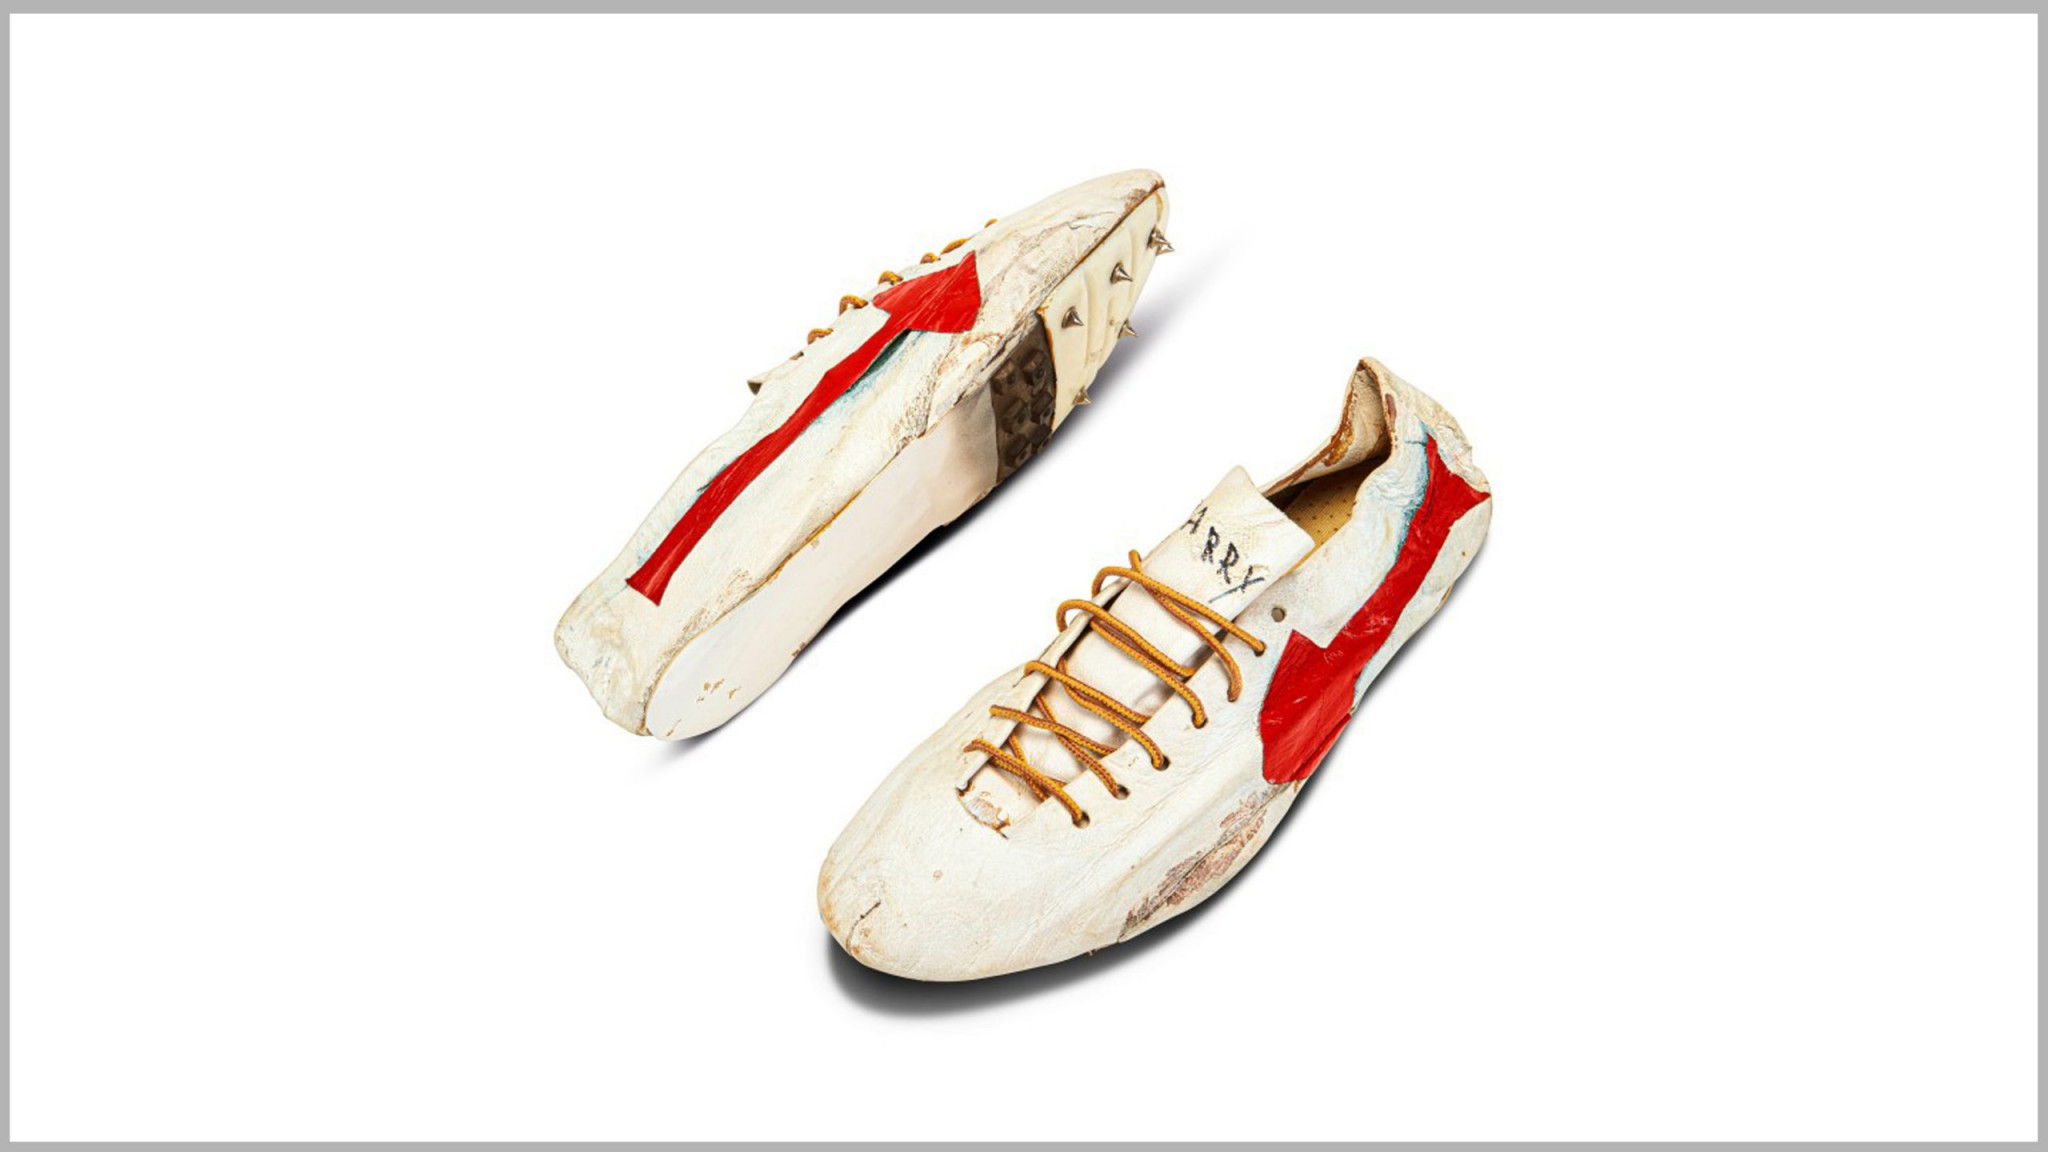 The crampons made for Canadian sprinter Harry Jerome featured a first design of the famous waffle soles invented by Nike © Sotheby's